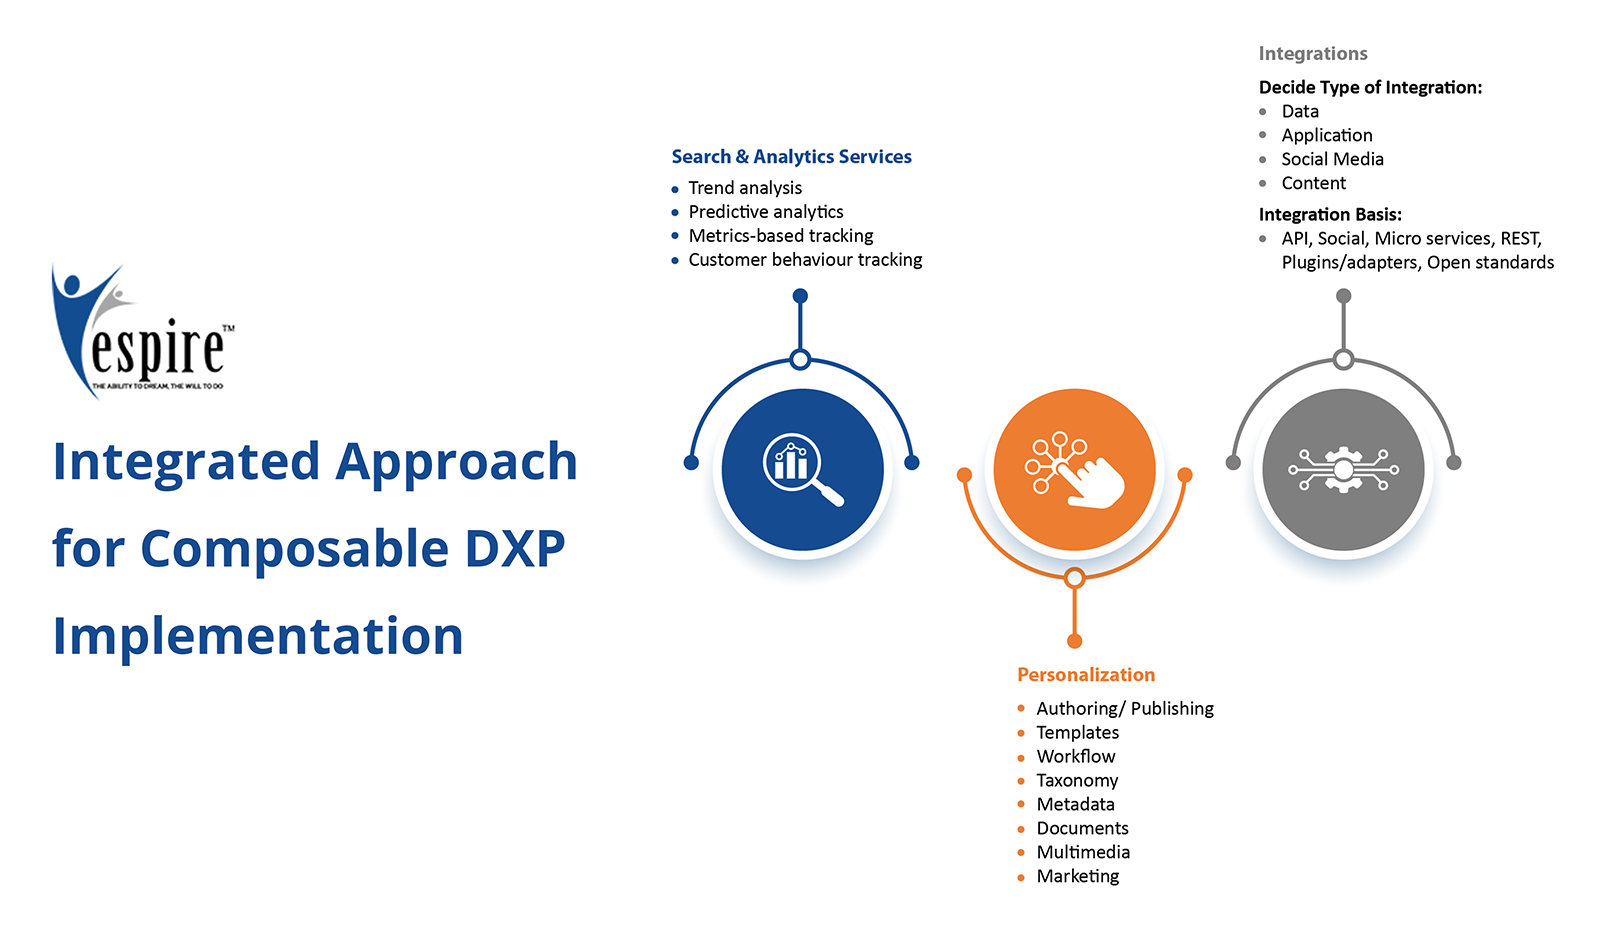 Composable dxp your 5point guide to build future ready digital experiences1